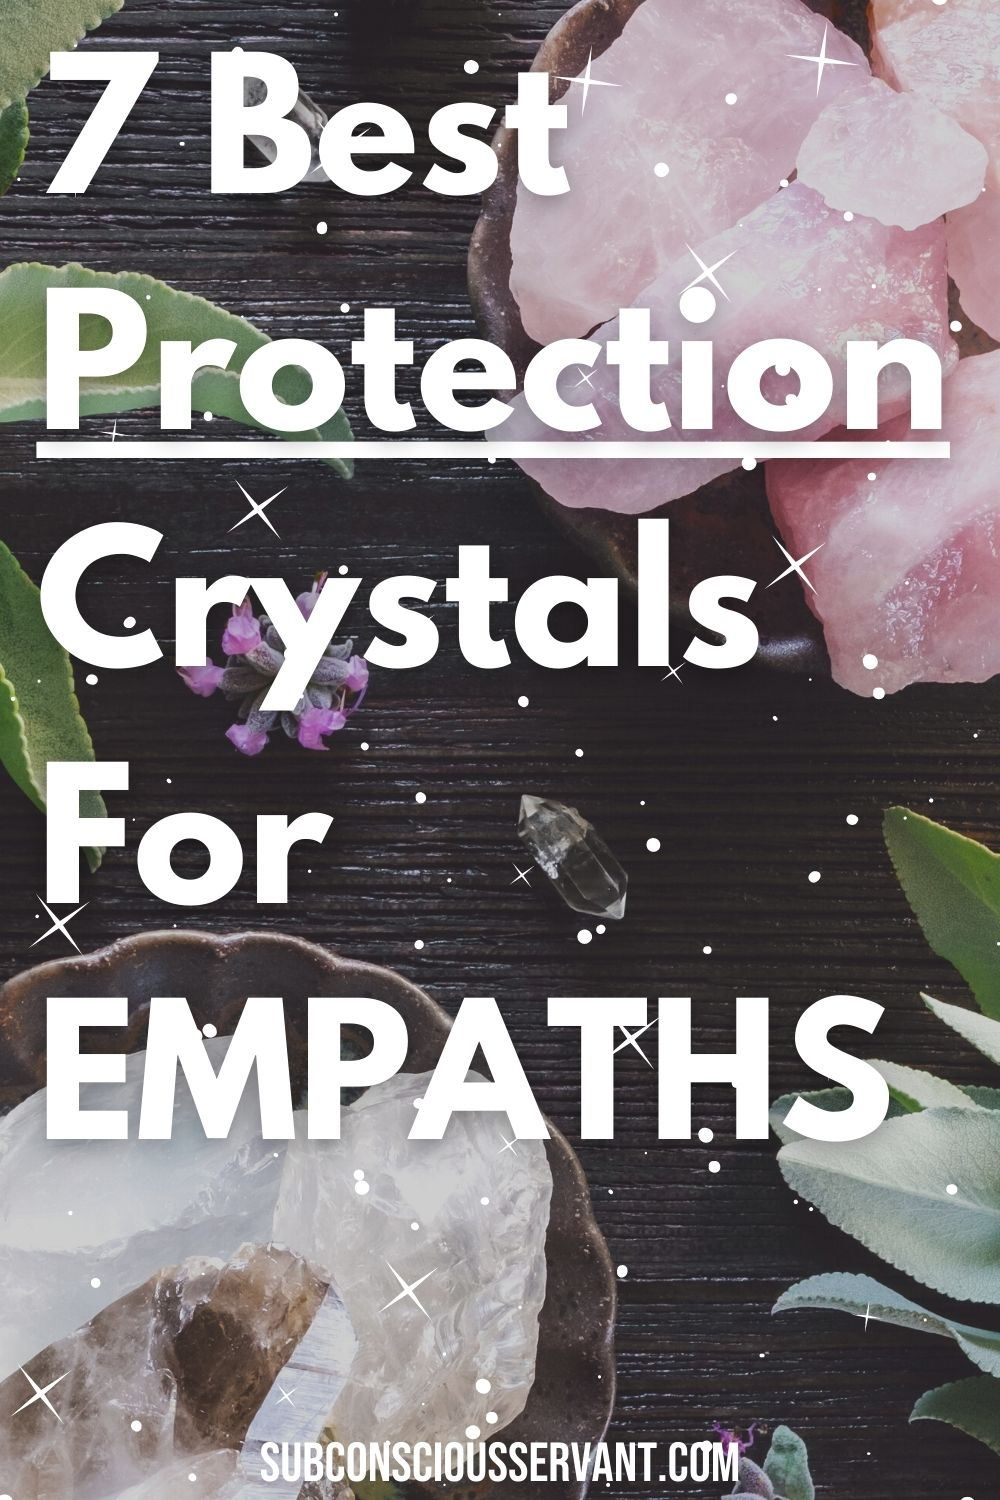 7 Best Protection Crystals for Empaths